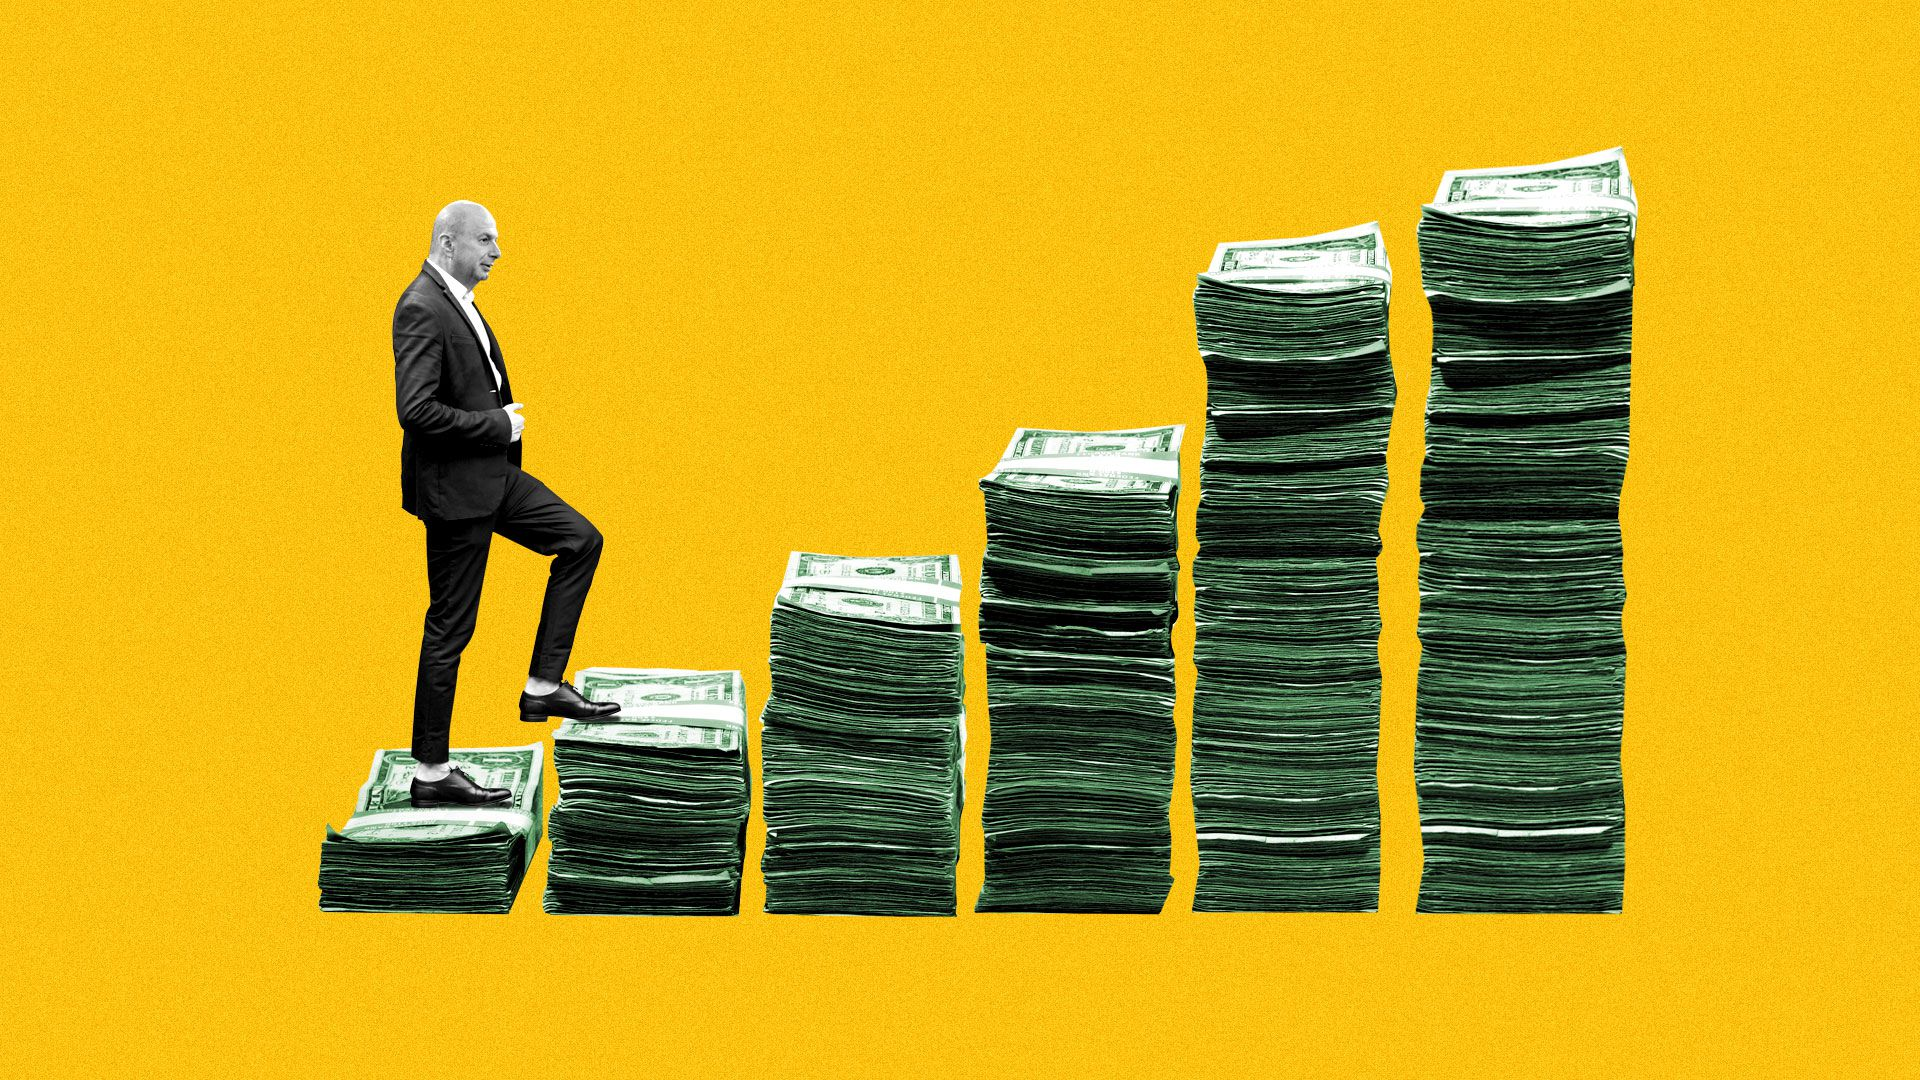 Illustration of Gordon Sondland climbing up stairs made of money.